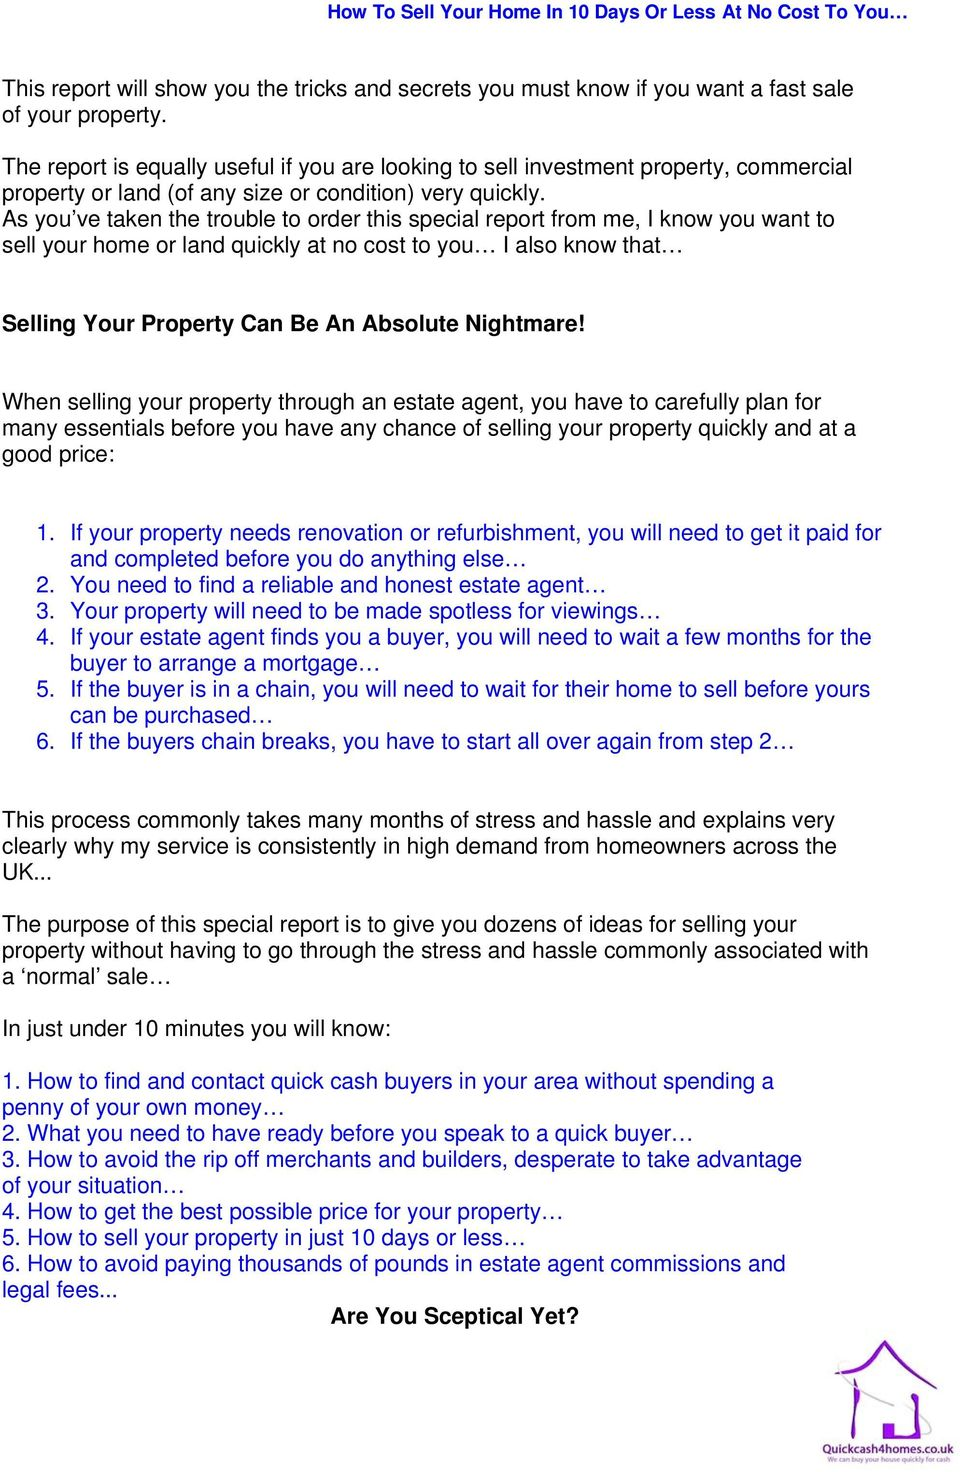 As you ve taken the trouble to order this special report from me, I know you want to sell your home or land quickly at no cost to you I also know that Selling Your Property Can Be An Absolute